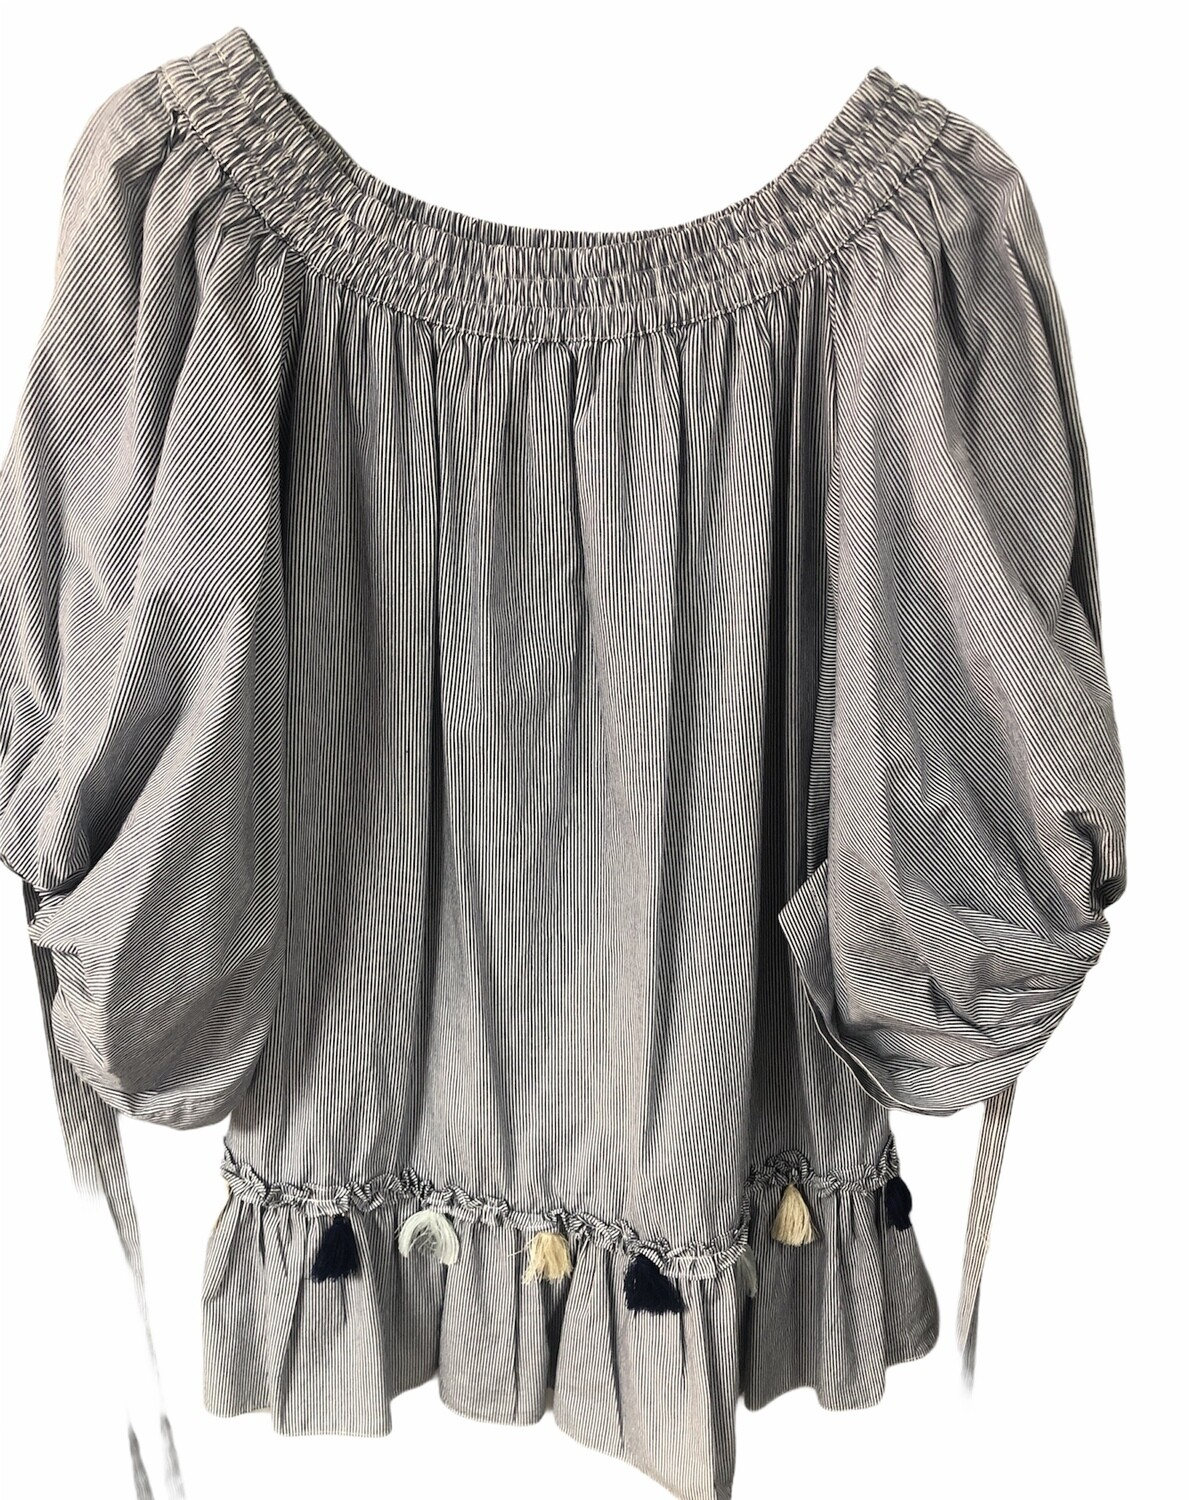 MISA Pinstripe Boho Off-The-Shoulder Blouse size Small